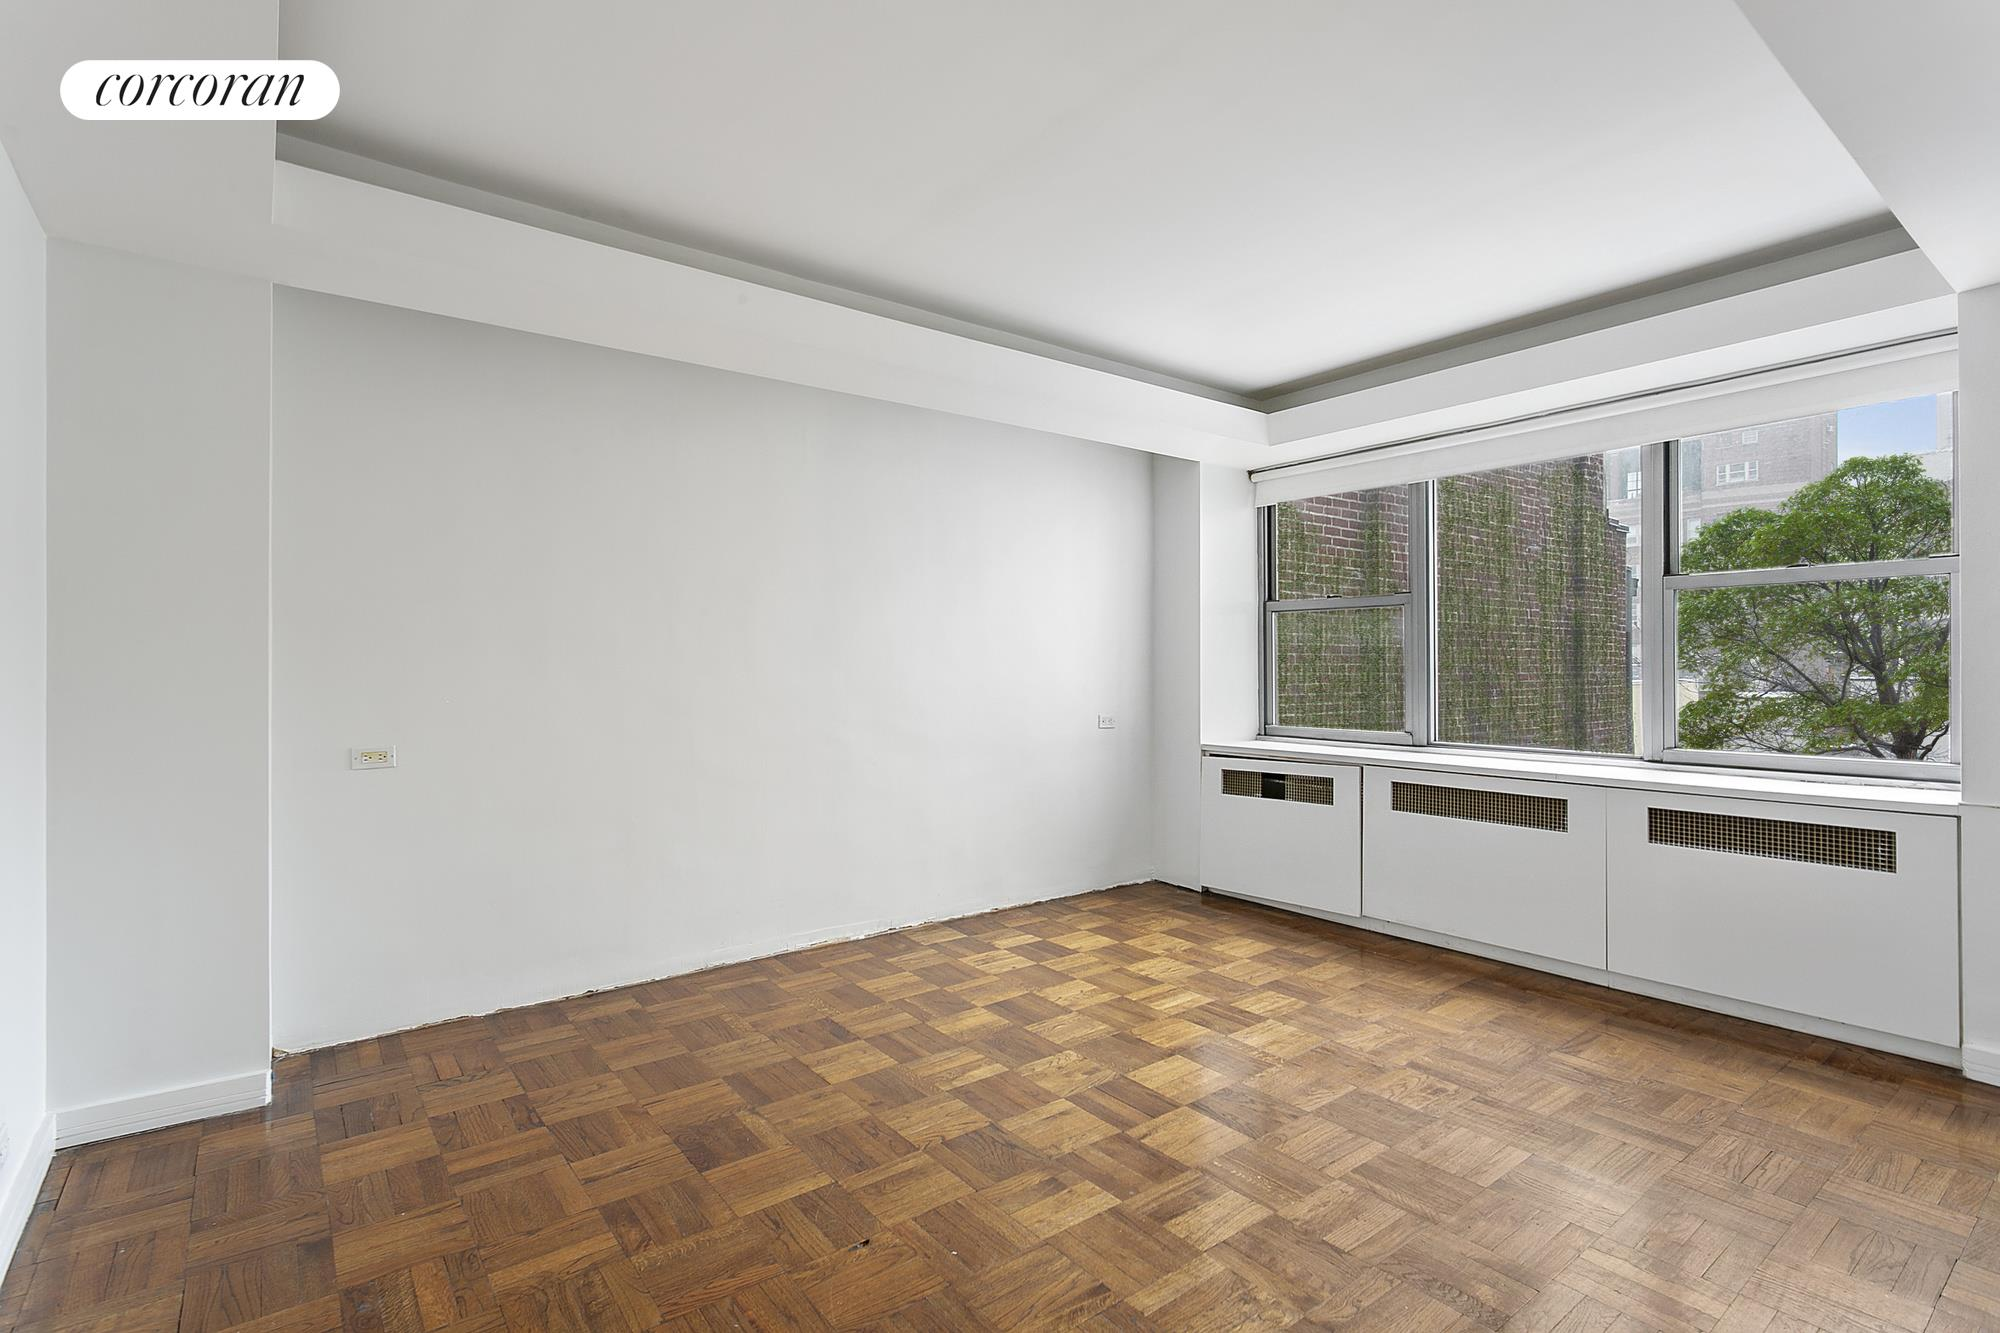 45 East 72nd Street, 8A, Large Gallery leading to a spacious Living Room